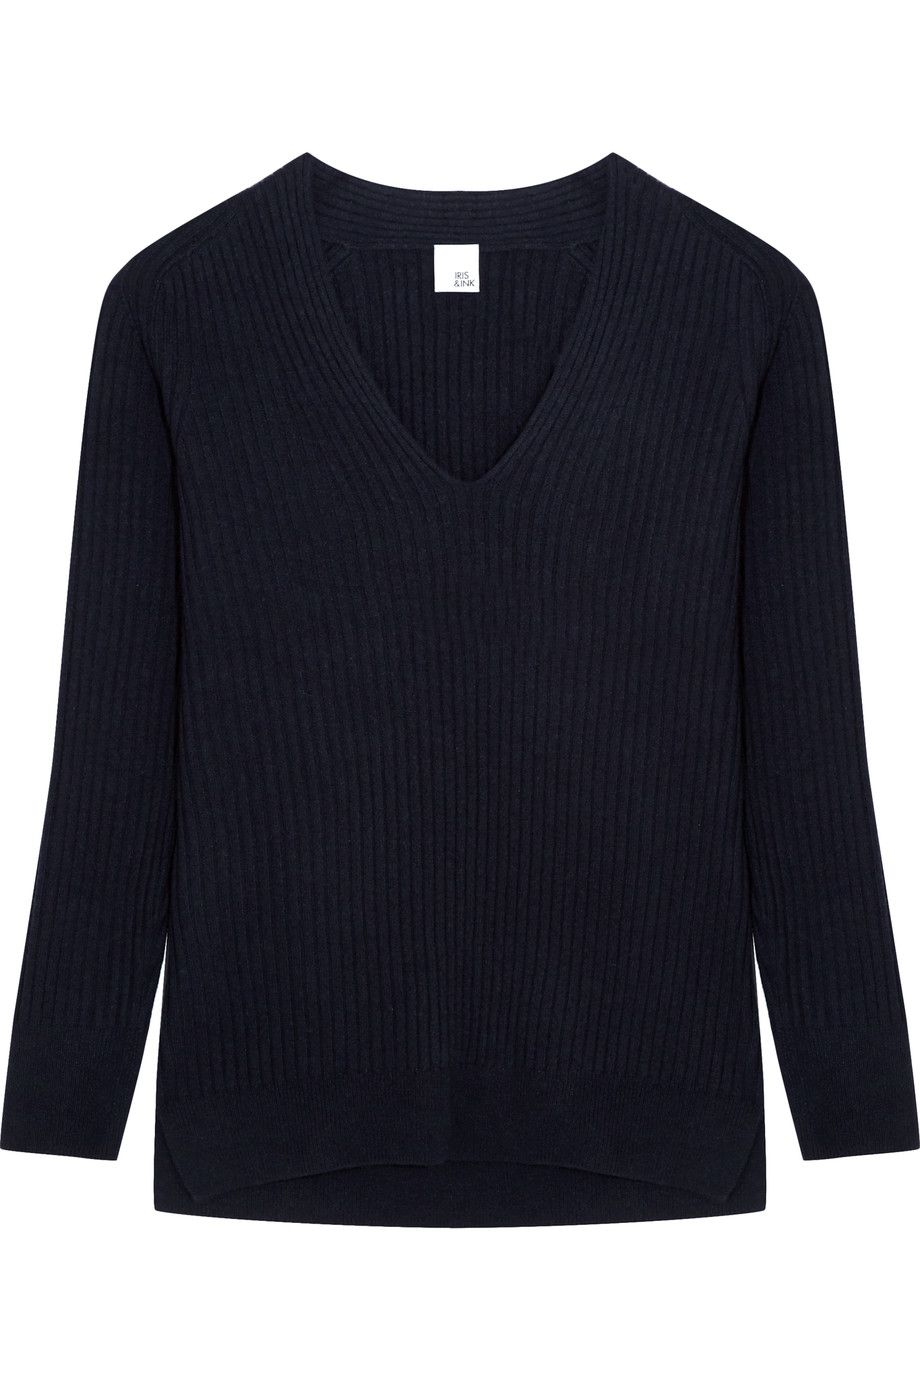 Shop on-sale Iris and Ink Silvia ribbed cashmere sweater. Browse ...